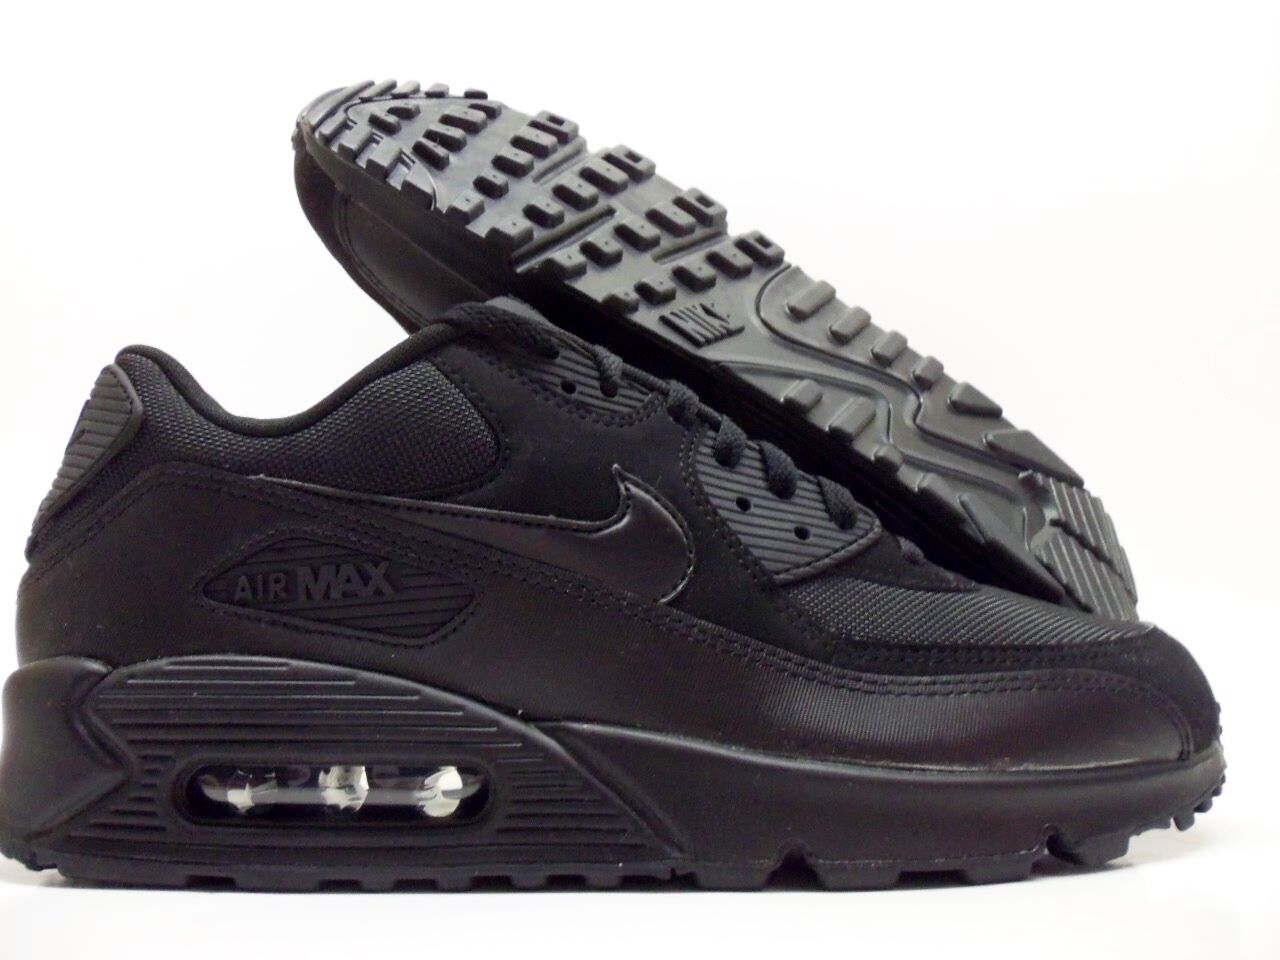 450a07384e88 durable service NIKE AIR MAX 90 ESSENTIAL RUNNING SHOE BLACK BLACK SIZE  MEN S 12